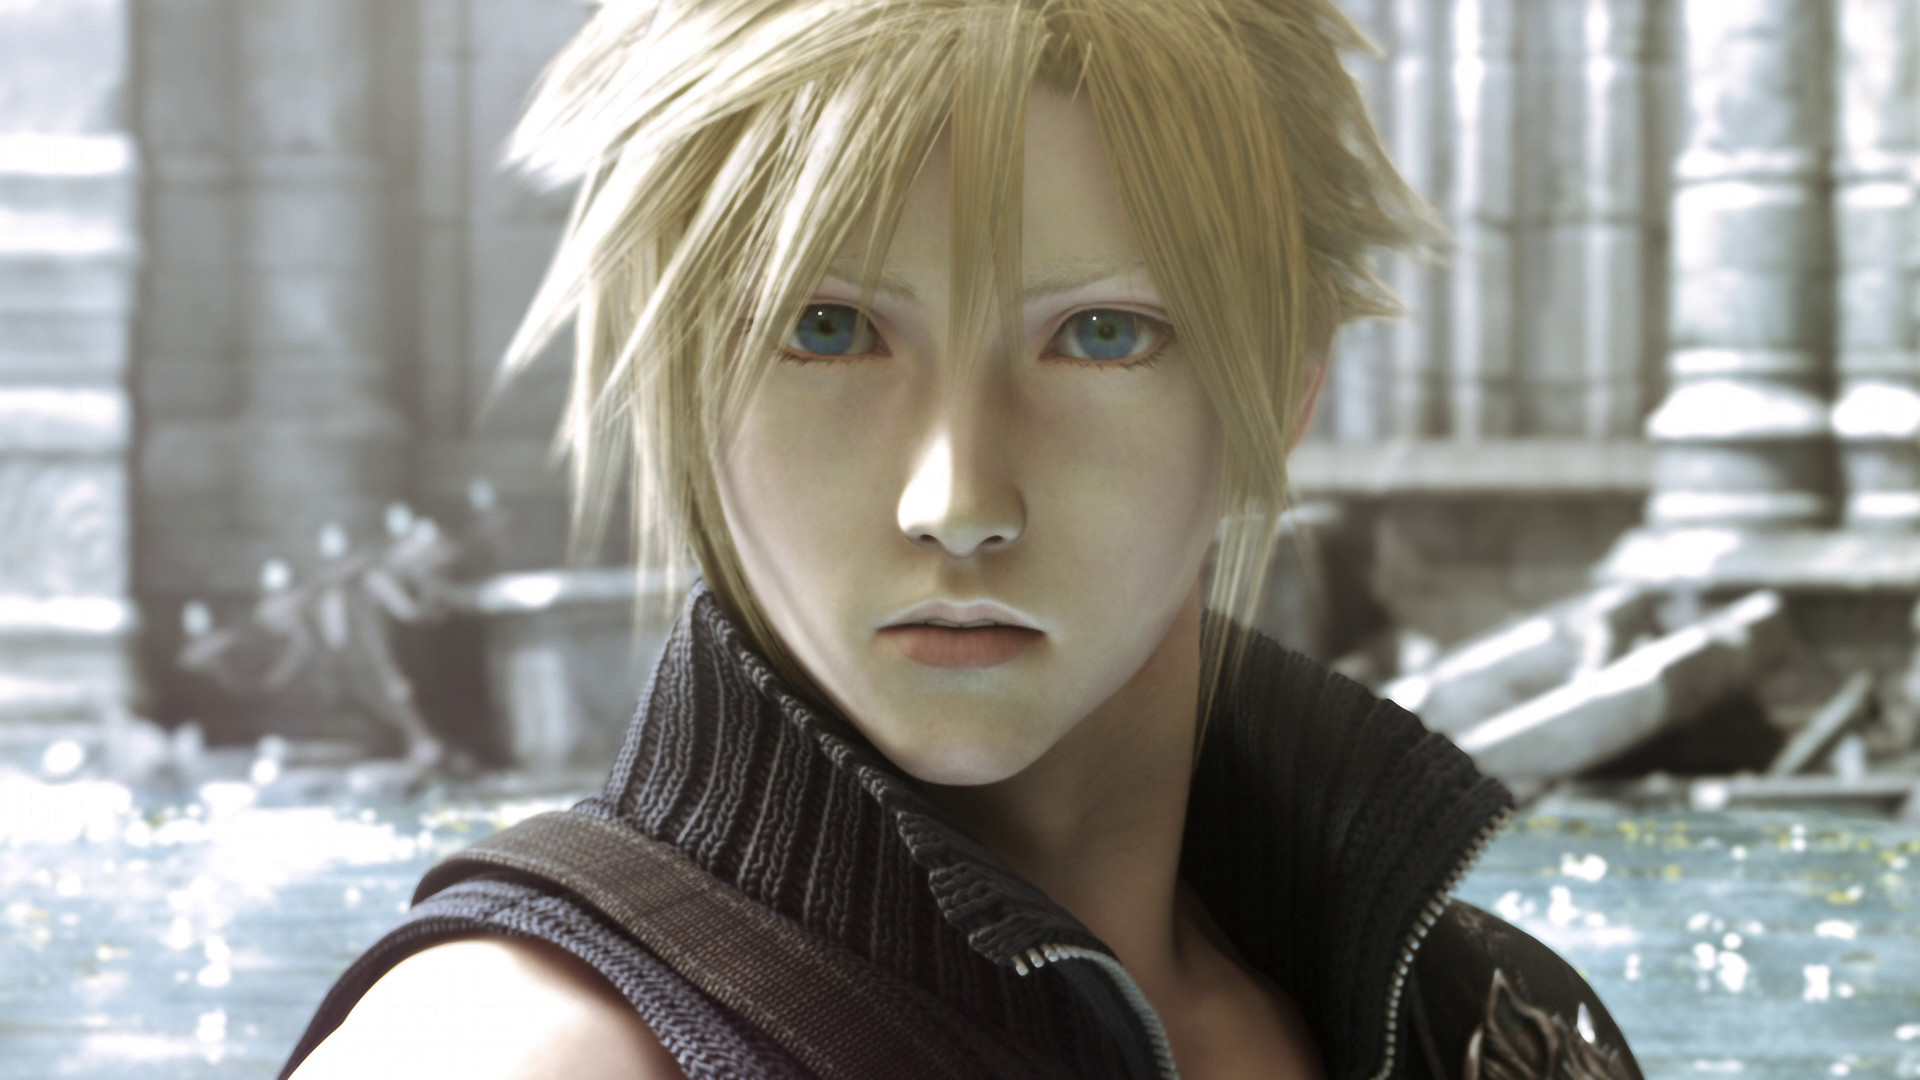 Gaming With God Cloud Strife Finds Forgiveness Beneath The Tangles